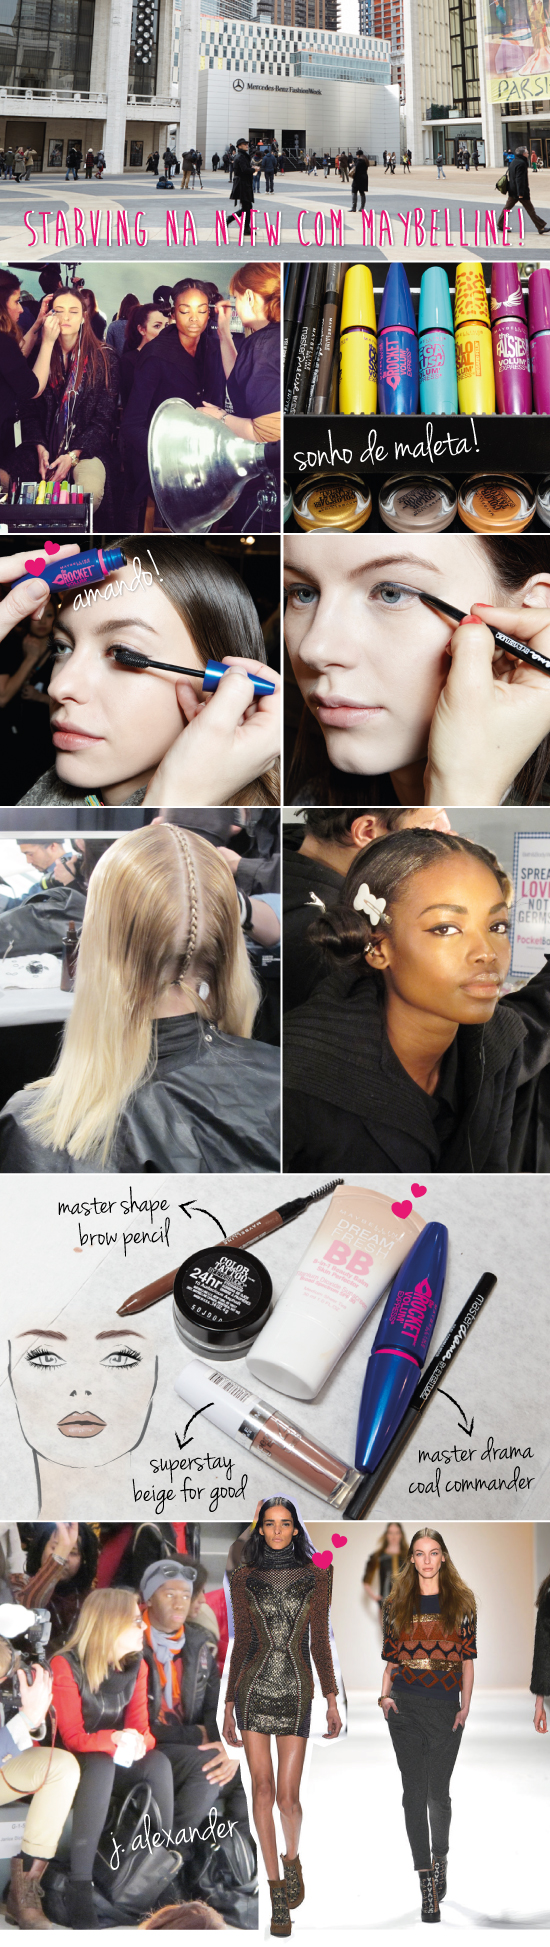 NYFW STARVING MAYBELLINE MBFW FALL 2013 INVERNO BELEZA BEAUTE BEAUTY BRAID TRANCA DELINEADOR DELINEADO MASTER DRAMA SHAPE BB CREAM SUPERSTAY BEIGE FOR GOOD ROCKET MASCARA RIMEL LINCOLN CENTER J.ALEXANDER AMERICAS NEXT TOP MODEL PRODUTOS USADOS DESFILE CUSTO BARCELONA RUNWAY LOOK